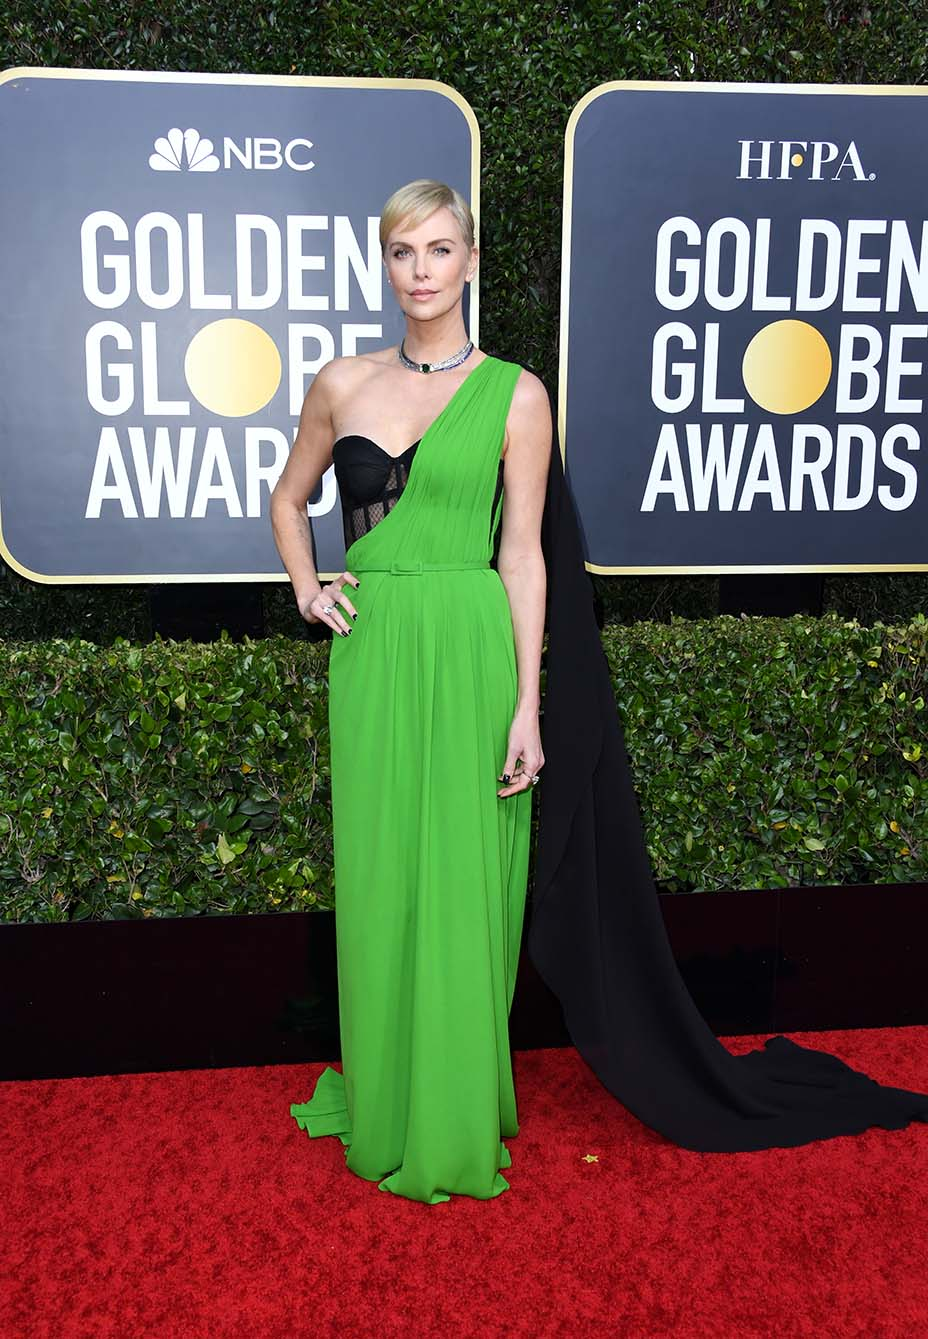 Charlize Theron Slays 2020 Golden Globes Red Carpet in Sexy One-Shoulder Gown